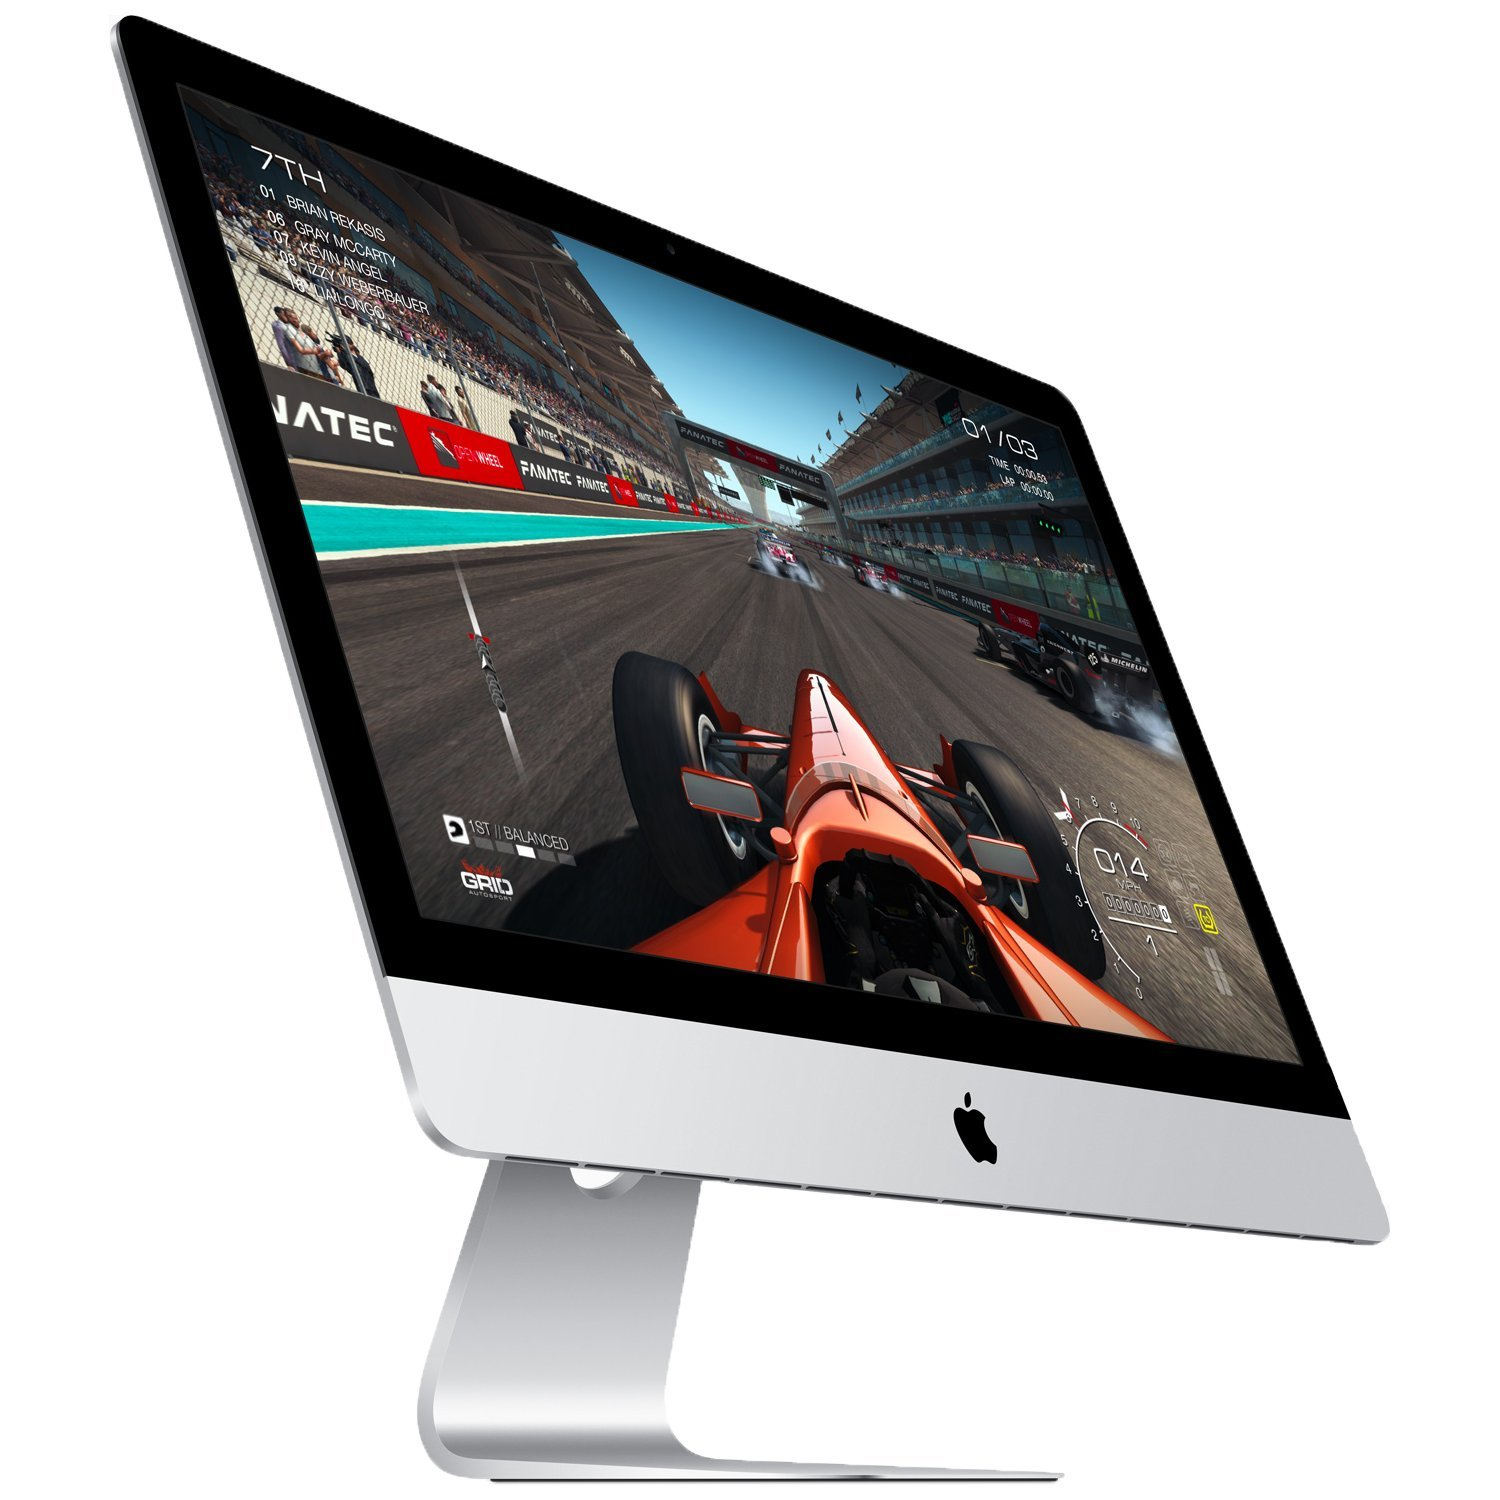 Apple iMac 27'' Desktop with Retina 5K Display (Mid 2017) - 4.2GHz Quad-Core Intel Core 7th-gen i7, 1TB SSD, 64GB 2400MHz DDR4 Memory, 8GB Radeon Pro 580 Graphics, macOS, Magic Keyboard - Spanish by Apple (Image #8)